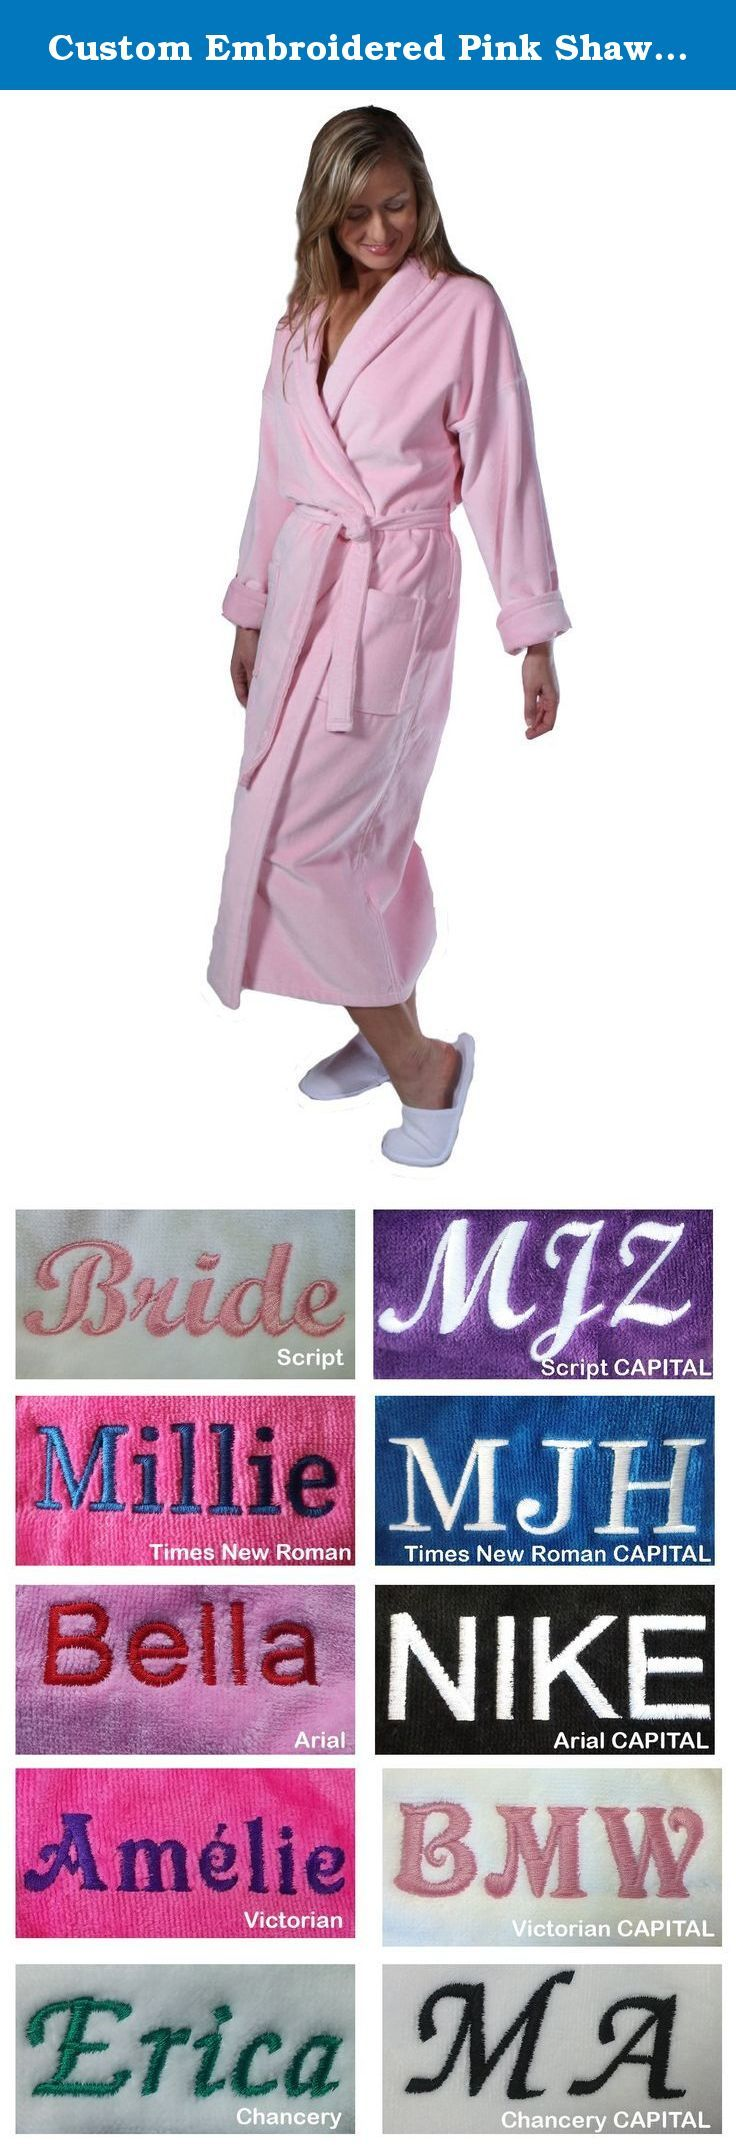 Custom Embroidered Pink Shawl Adult Bathrobe, Pink, One Size. Information About Personalization: Monogram takes 1 to 3 business days. Please email us under the detailed seller information tab on Amazon about embroidery information. Custom Names: Michael, Dr. Jackson, M.J., I Love Dad, etc up to 11 Letters. Stitch Colors: BLACK, PINK , WHITE , YELLOW , BLUE , GREEN , RED , BROWN . Fonts: Arial Round , Times Roman , Script 2 and Victorian If you order more than one product, Please indicate…